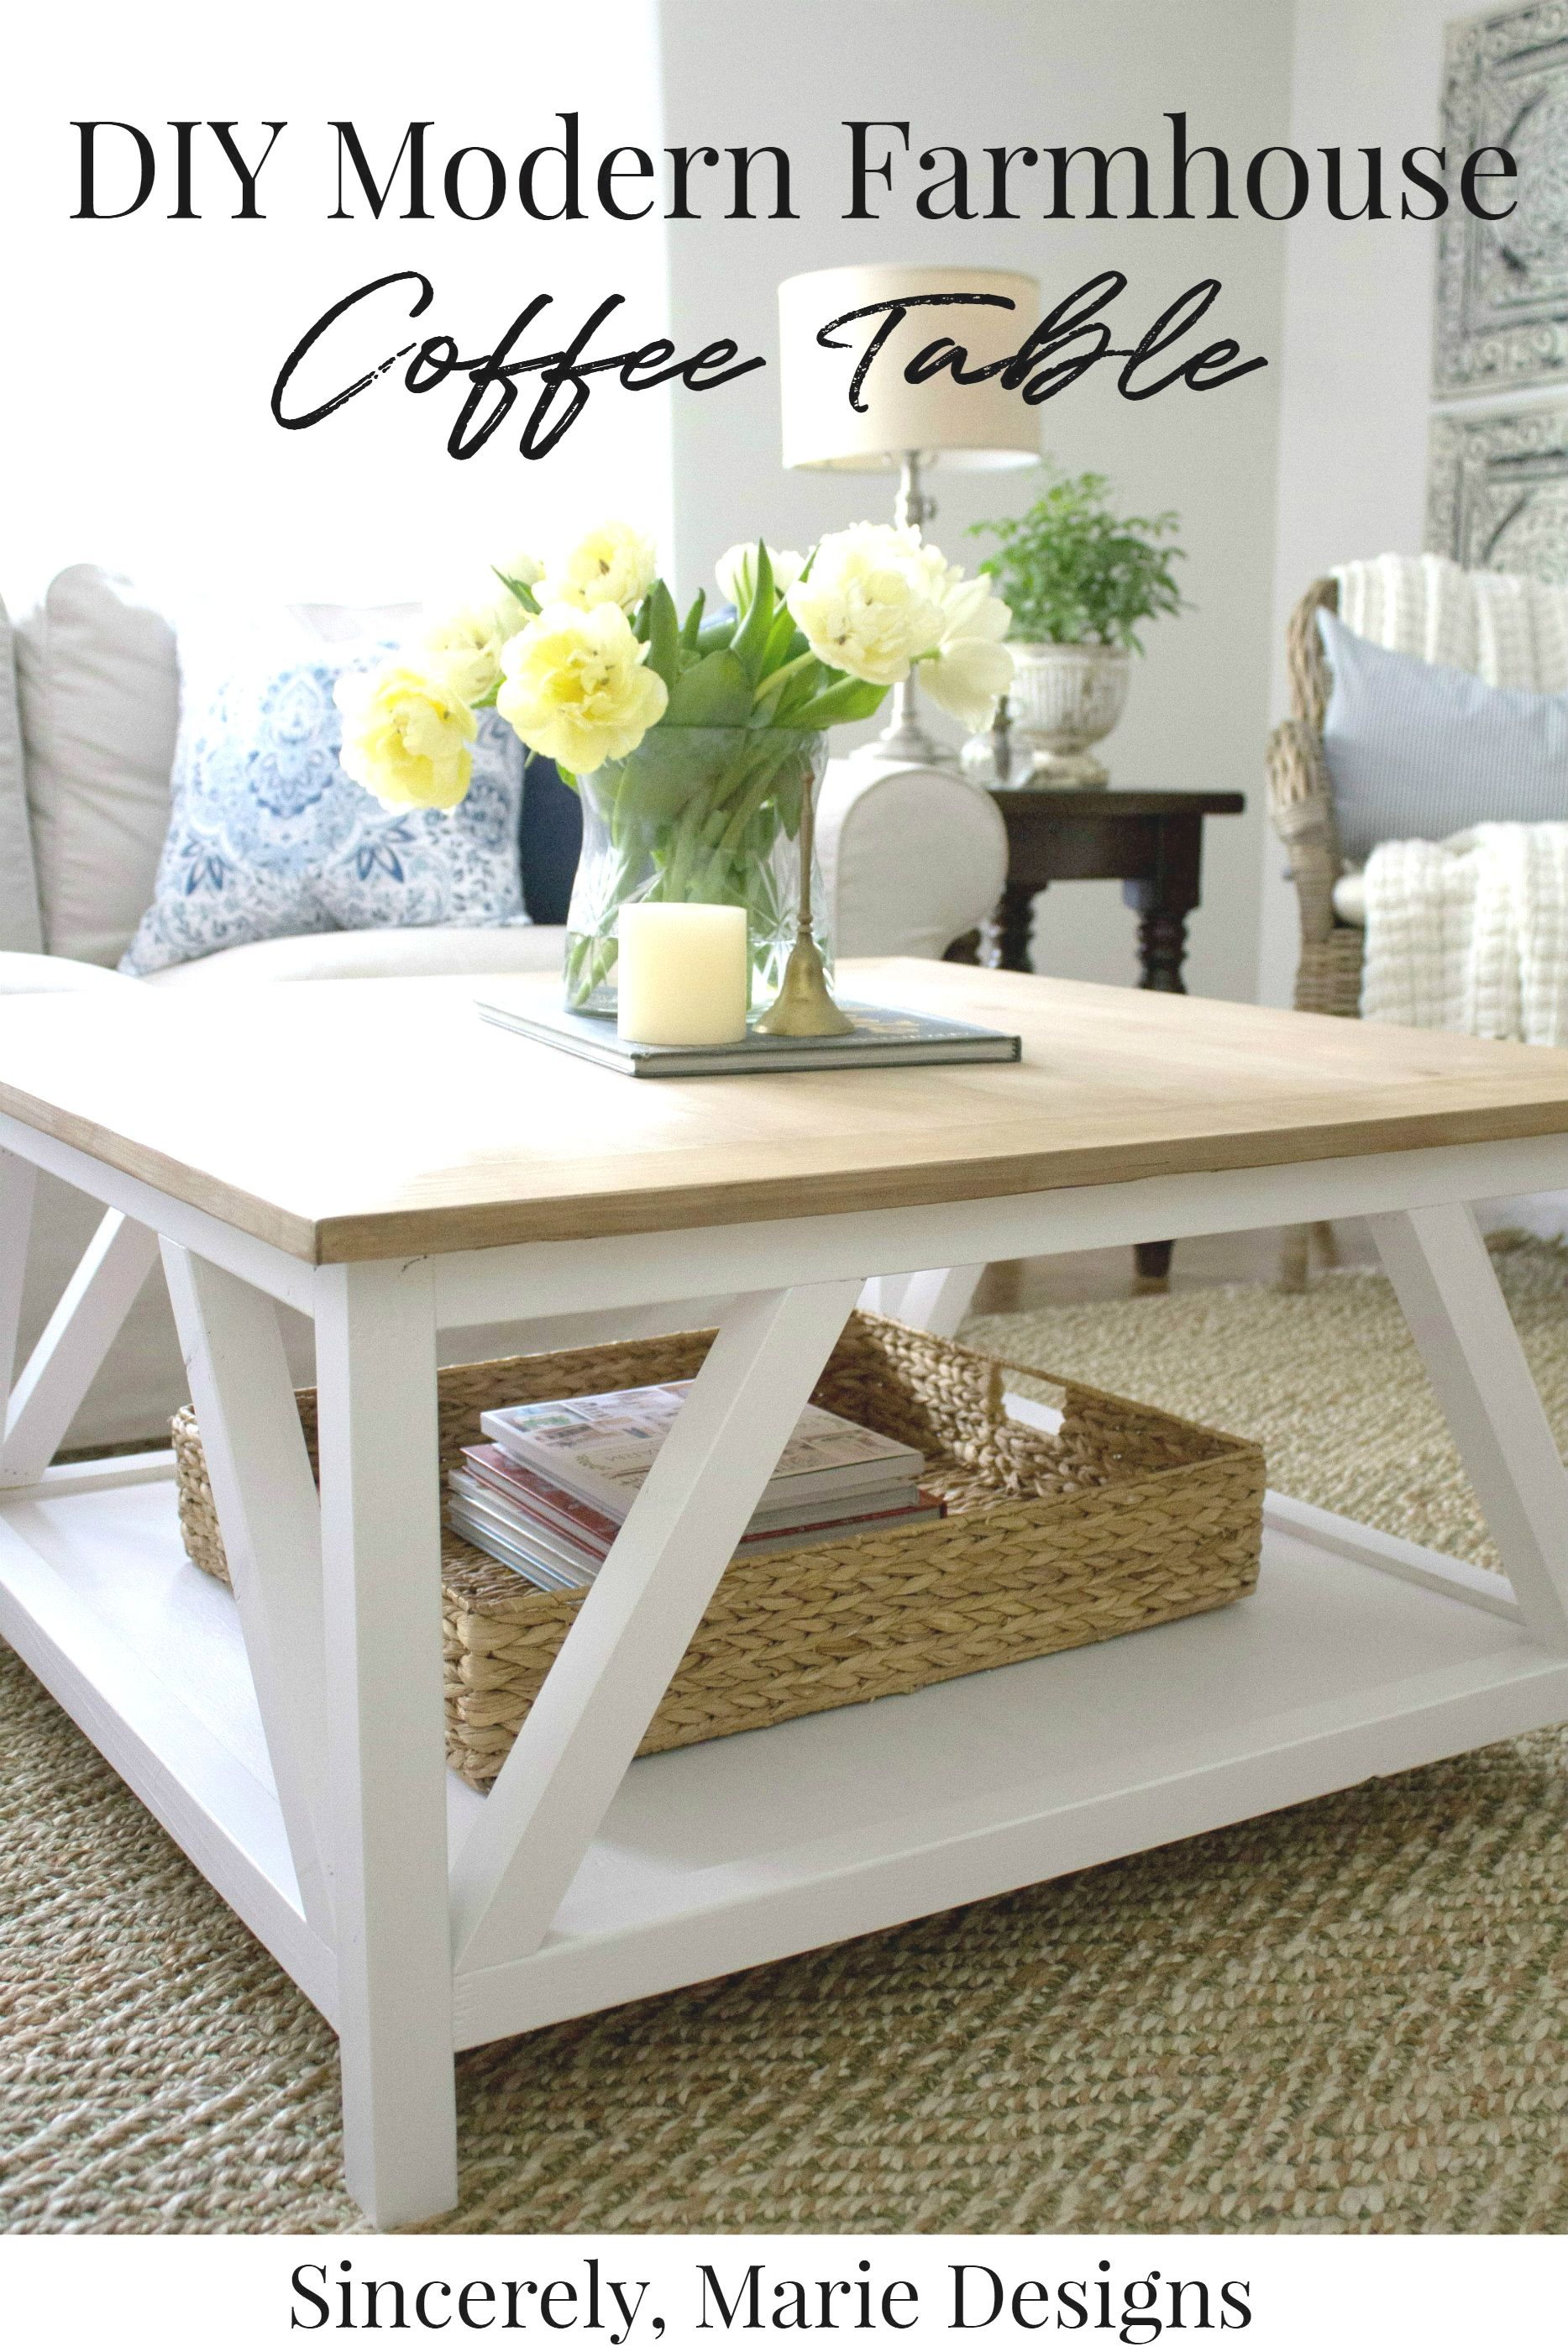 Diy Coffee Table With Truss Sides Diy Farmhouse Coffee Table Cool Coffee Tables Coffee Table Plans [ 1250 x 735 Pixel ]